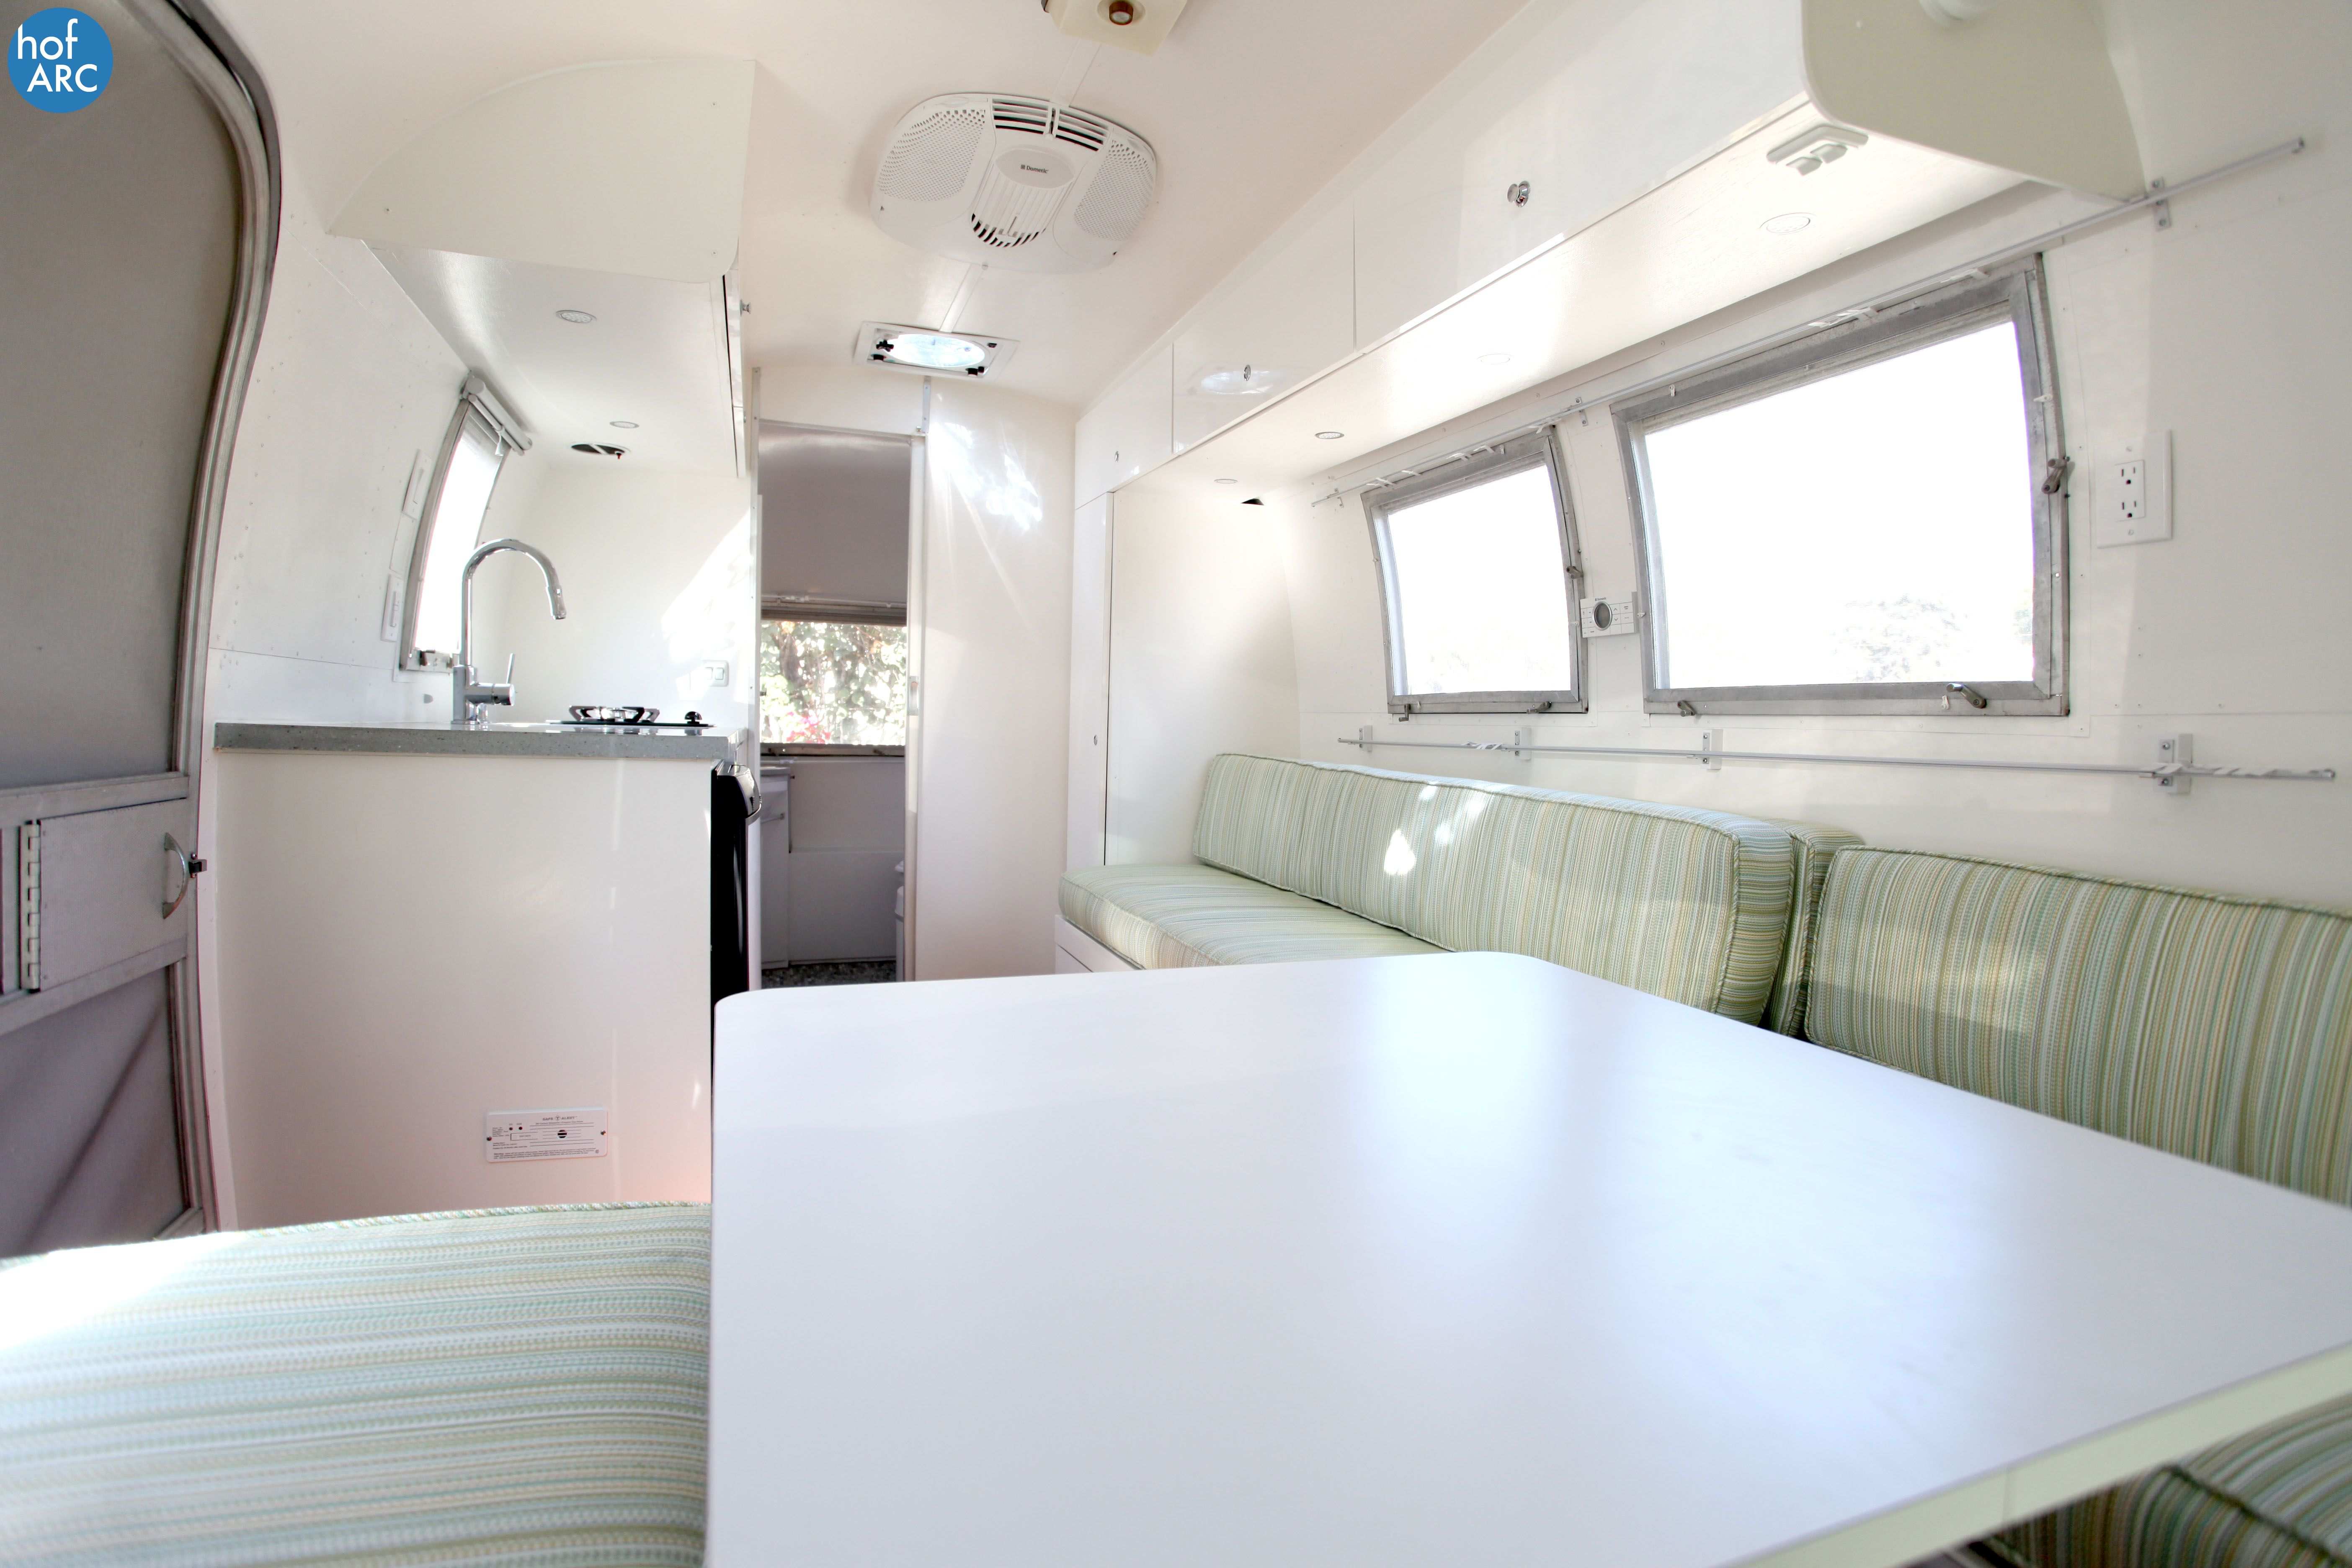 1967 Airstream Globetrotter Renovated By Hofarc Caravan Renovation Renovations Globe Trotter